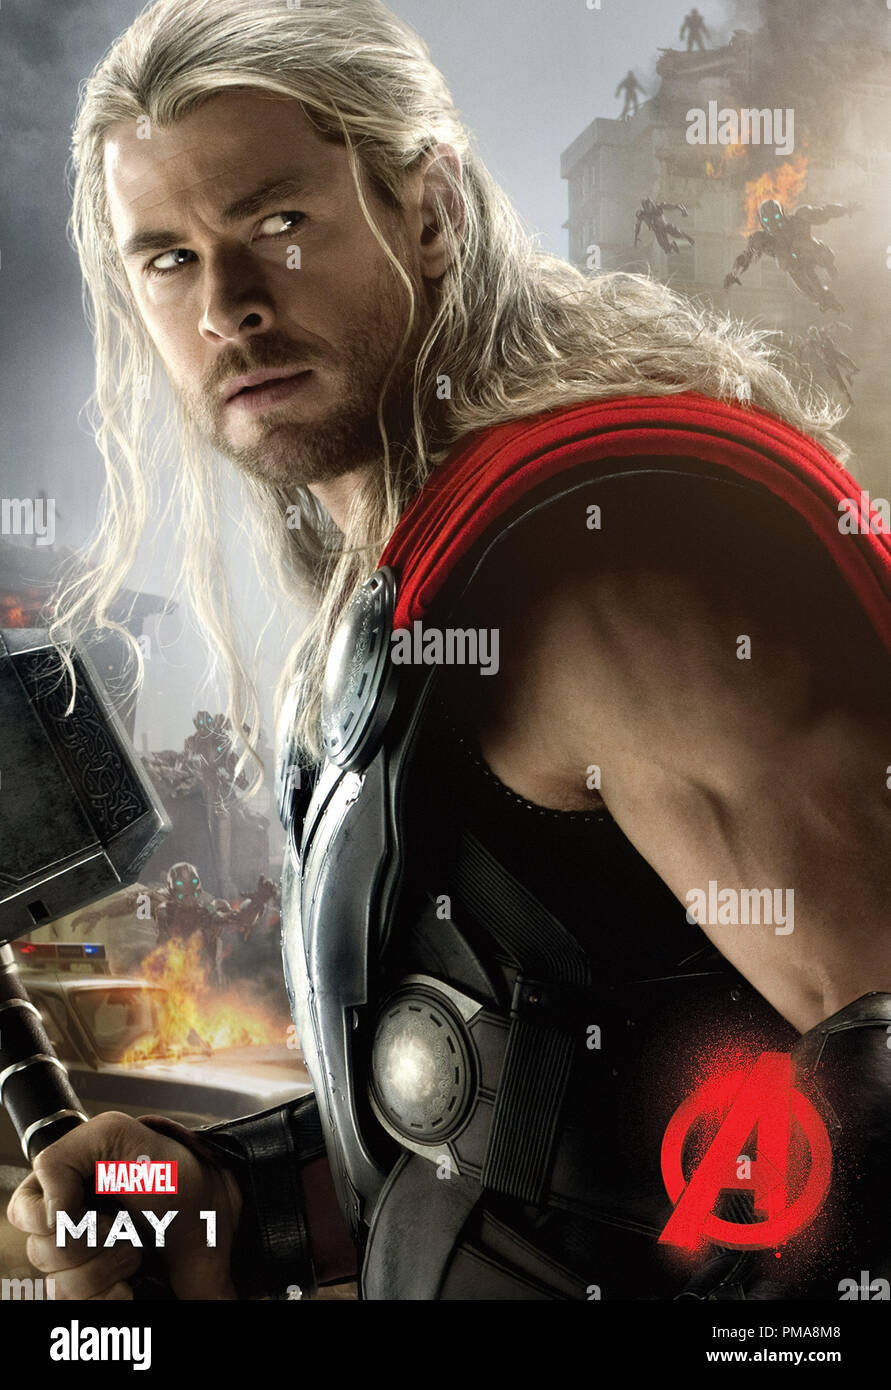 Marvel's Avengers: Age Of Ultron (Poster), Chris Hemsworth, Marvel 2015 Stock Photo